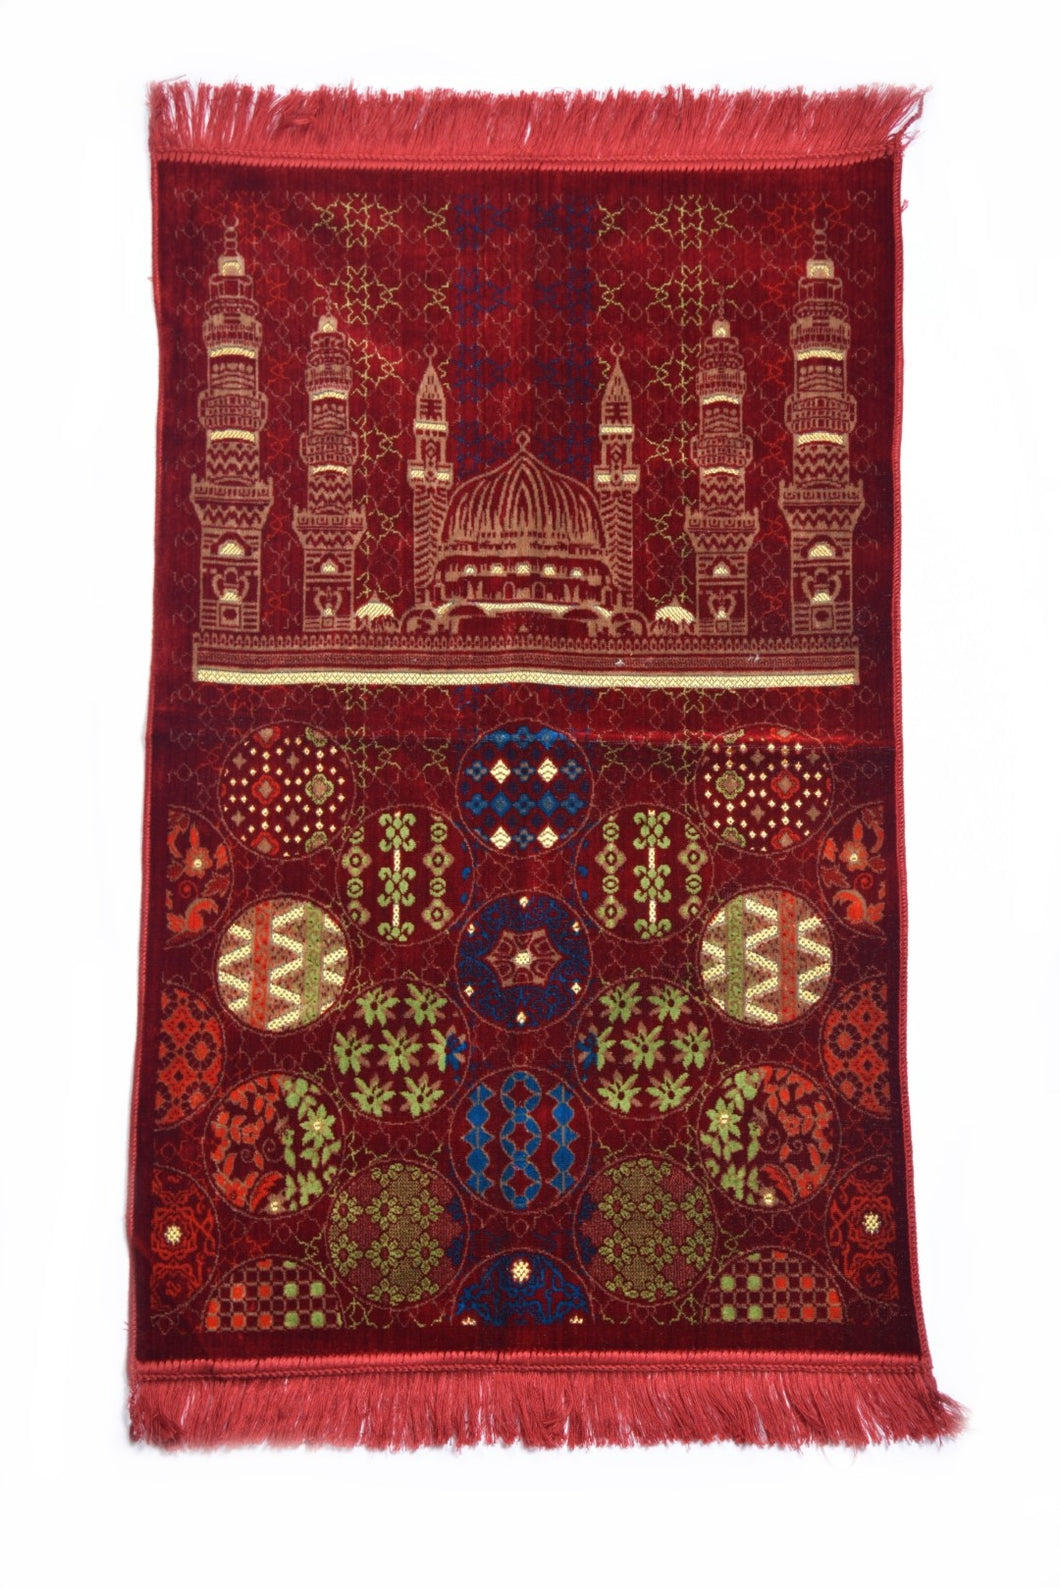 Al Arabia Muslim Prayer Rug - Made from Embossed Velvet - Features Special Medina Design & Fringes On Both Sides - Portable Islamic Prayer Mat - Perfect Gift for Ramadan & Special Occasions, 44 x 27